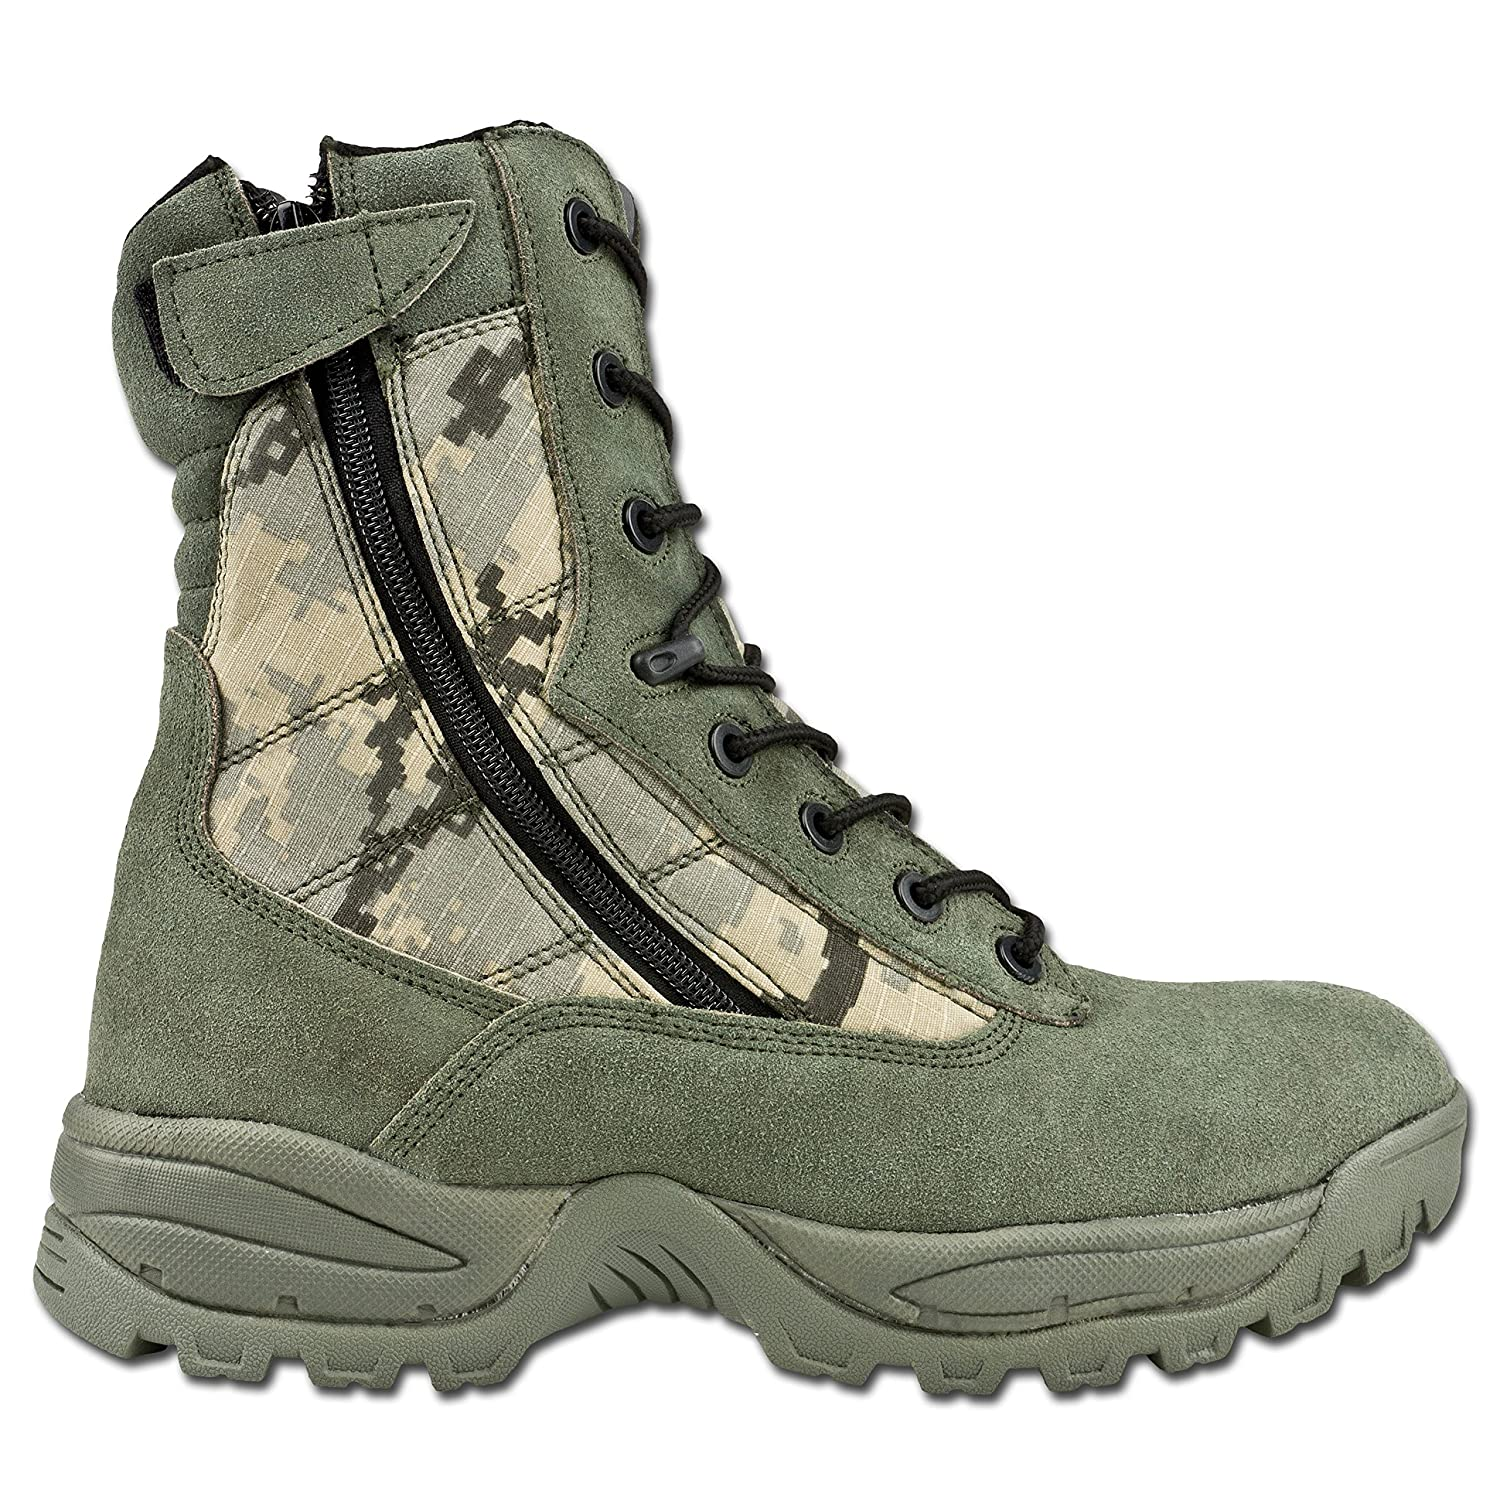 Mil-Tec Tactical Stiefel Two Zipper at-digital at-digital Zipper 749e73